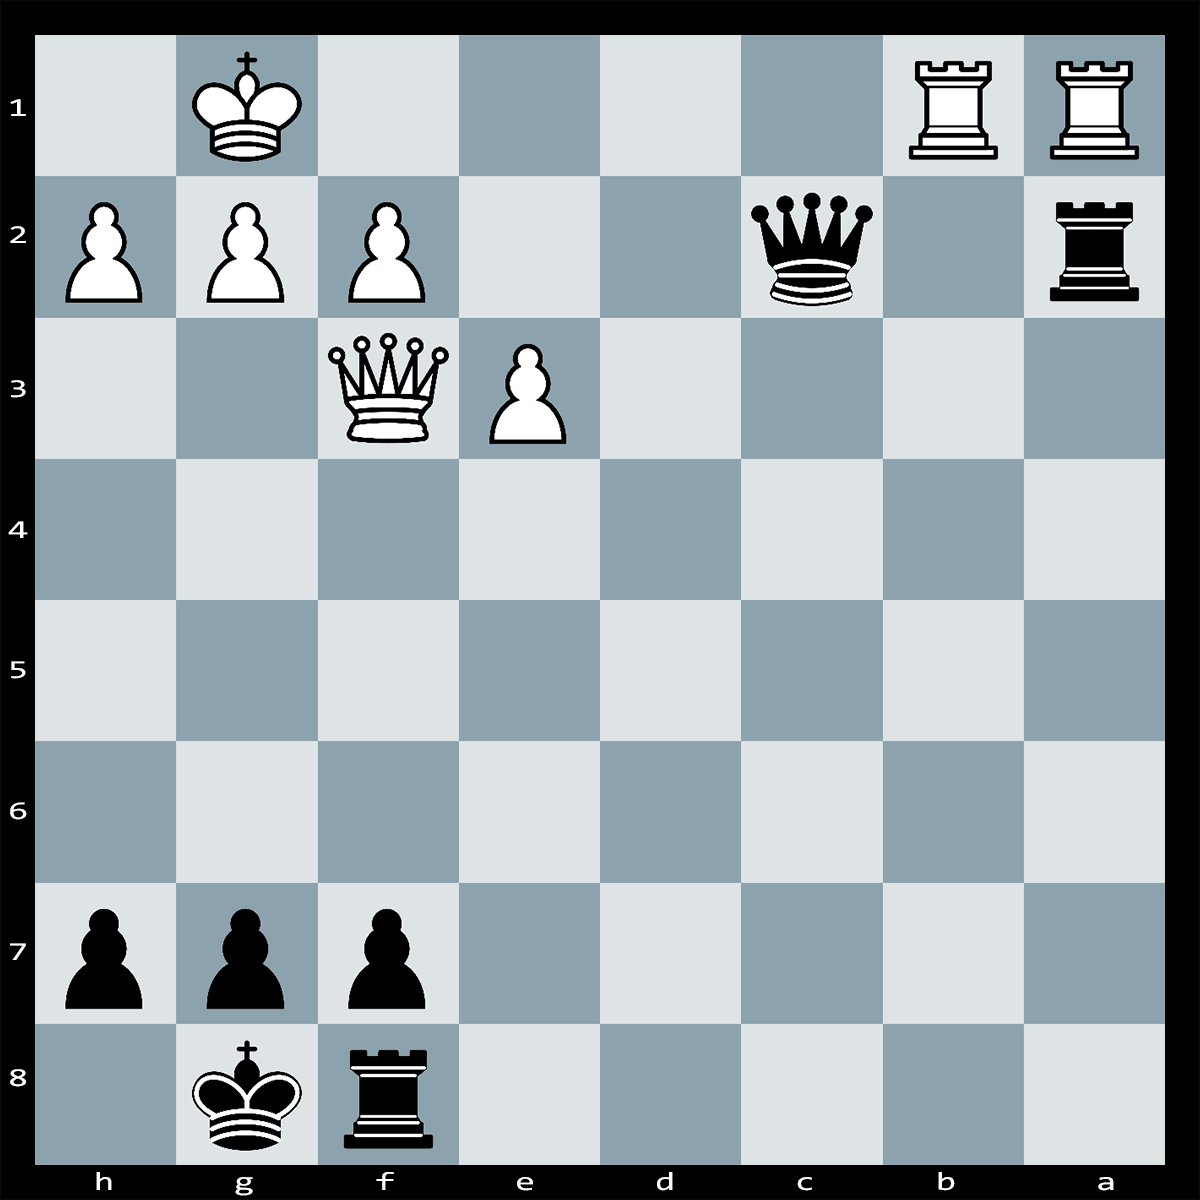 Puzzle #175 | White have an extra pawn on the board, but it is black to play and win the game. Find the best move.